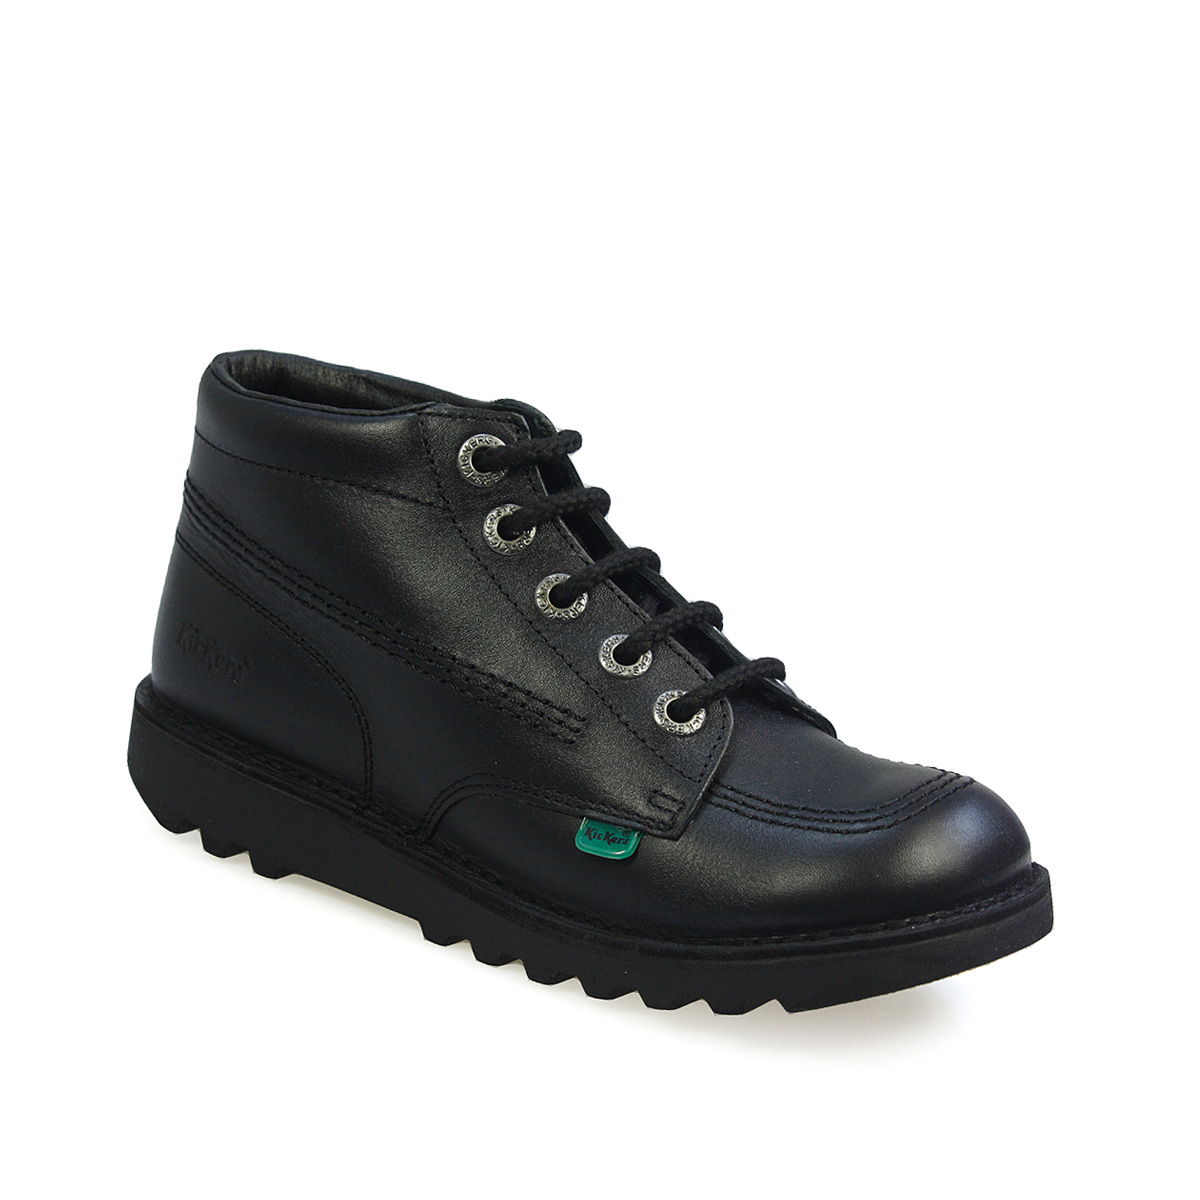 kickers kick hi core black youth unisex back to school